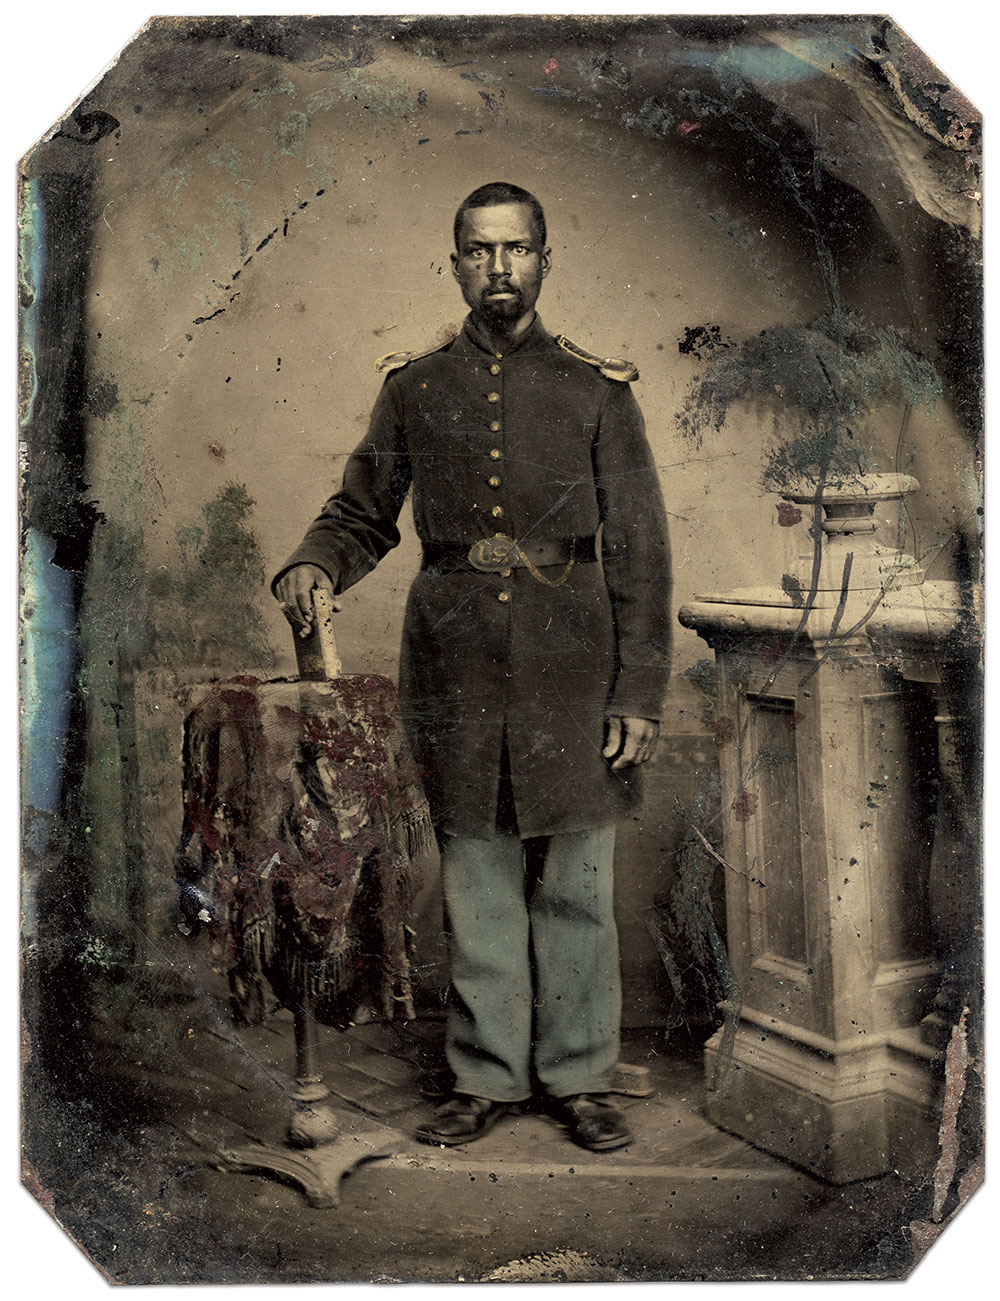 Quarter-plate tintype by an anonymous photographer. Ronald S. Coddington Collection.